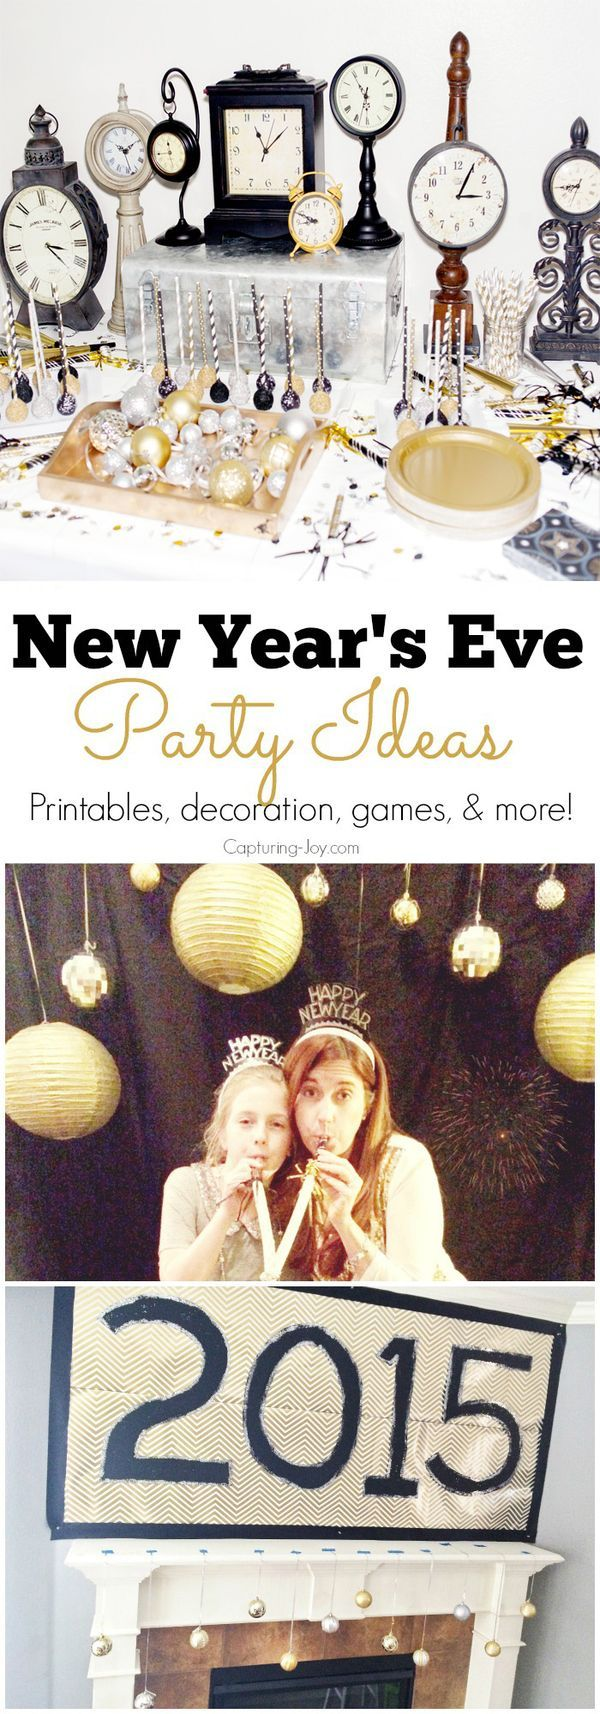 Who is ready for New Year's Eve? Need some last minute party inspiration? Check out these ideas!